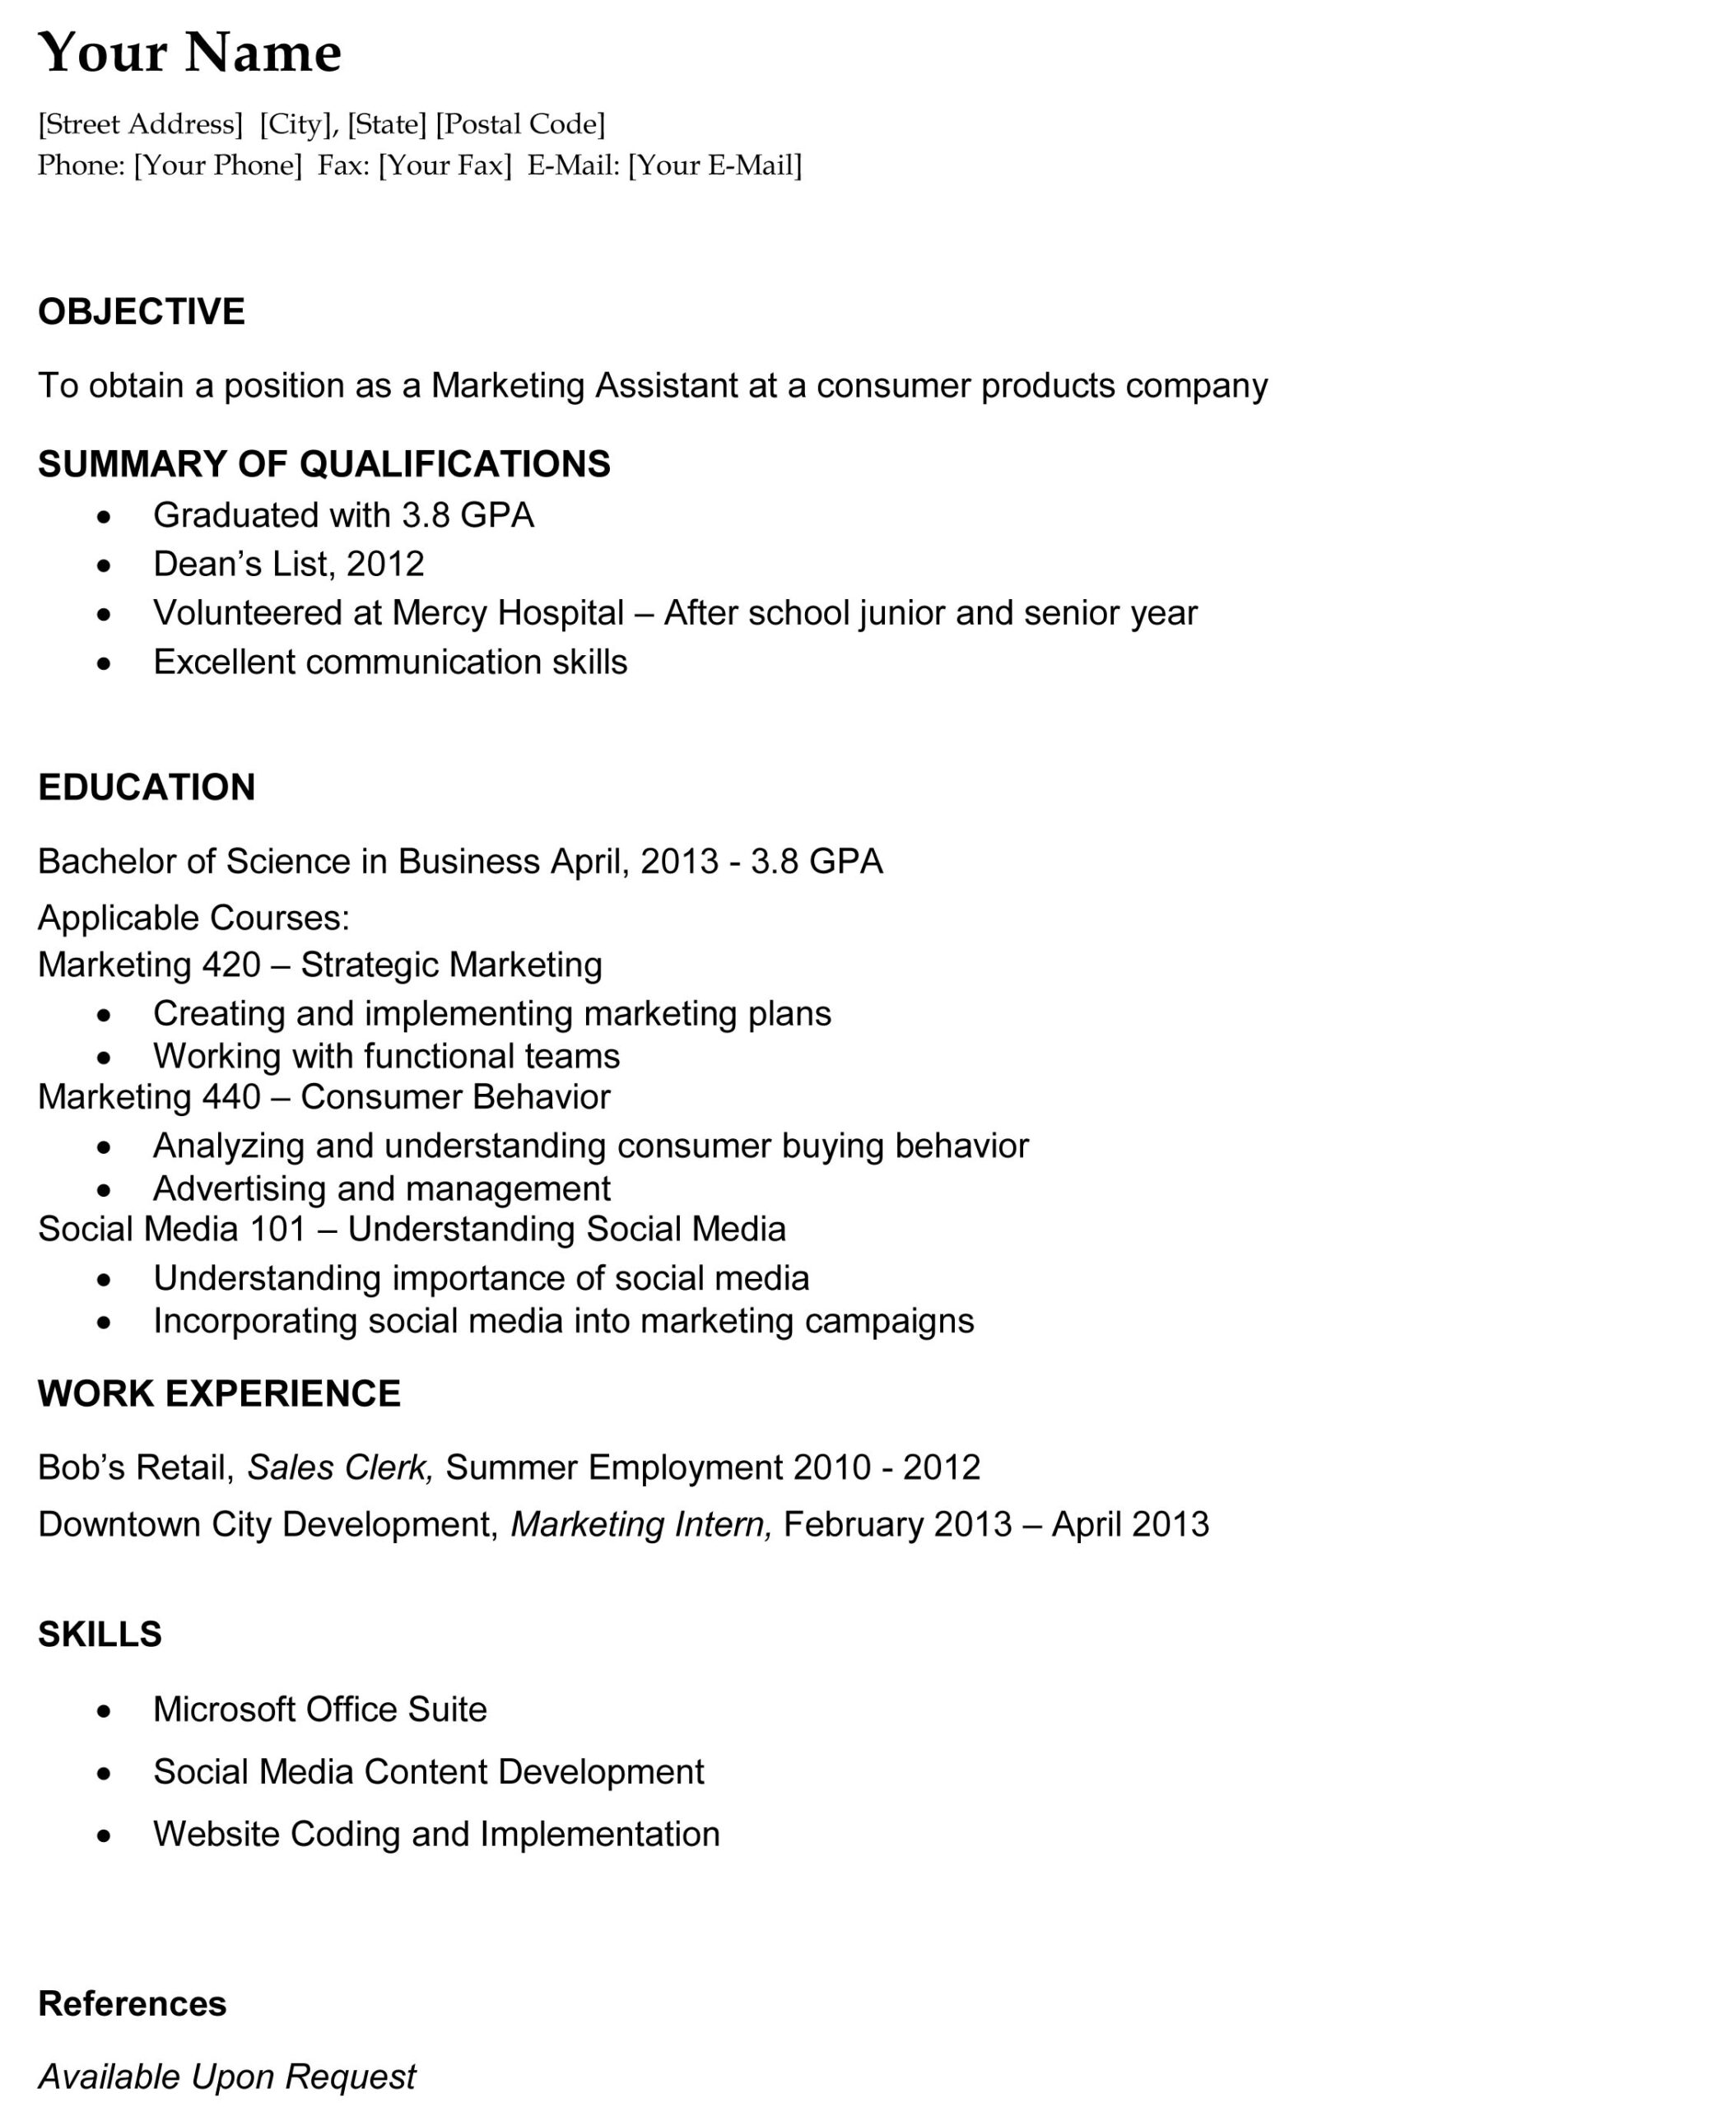 recent college graduate resume the template site sample for rpn skills indeed esthetician Resume Sample Resume For Recent College Graduate